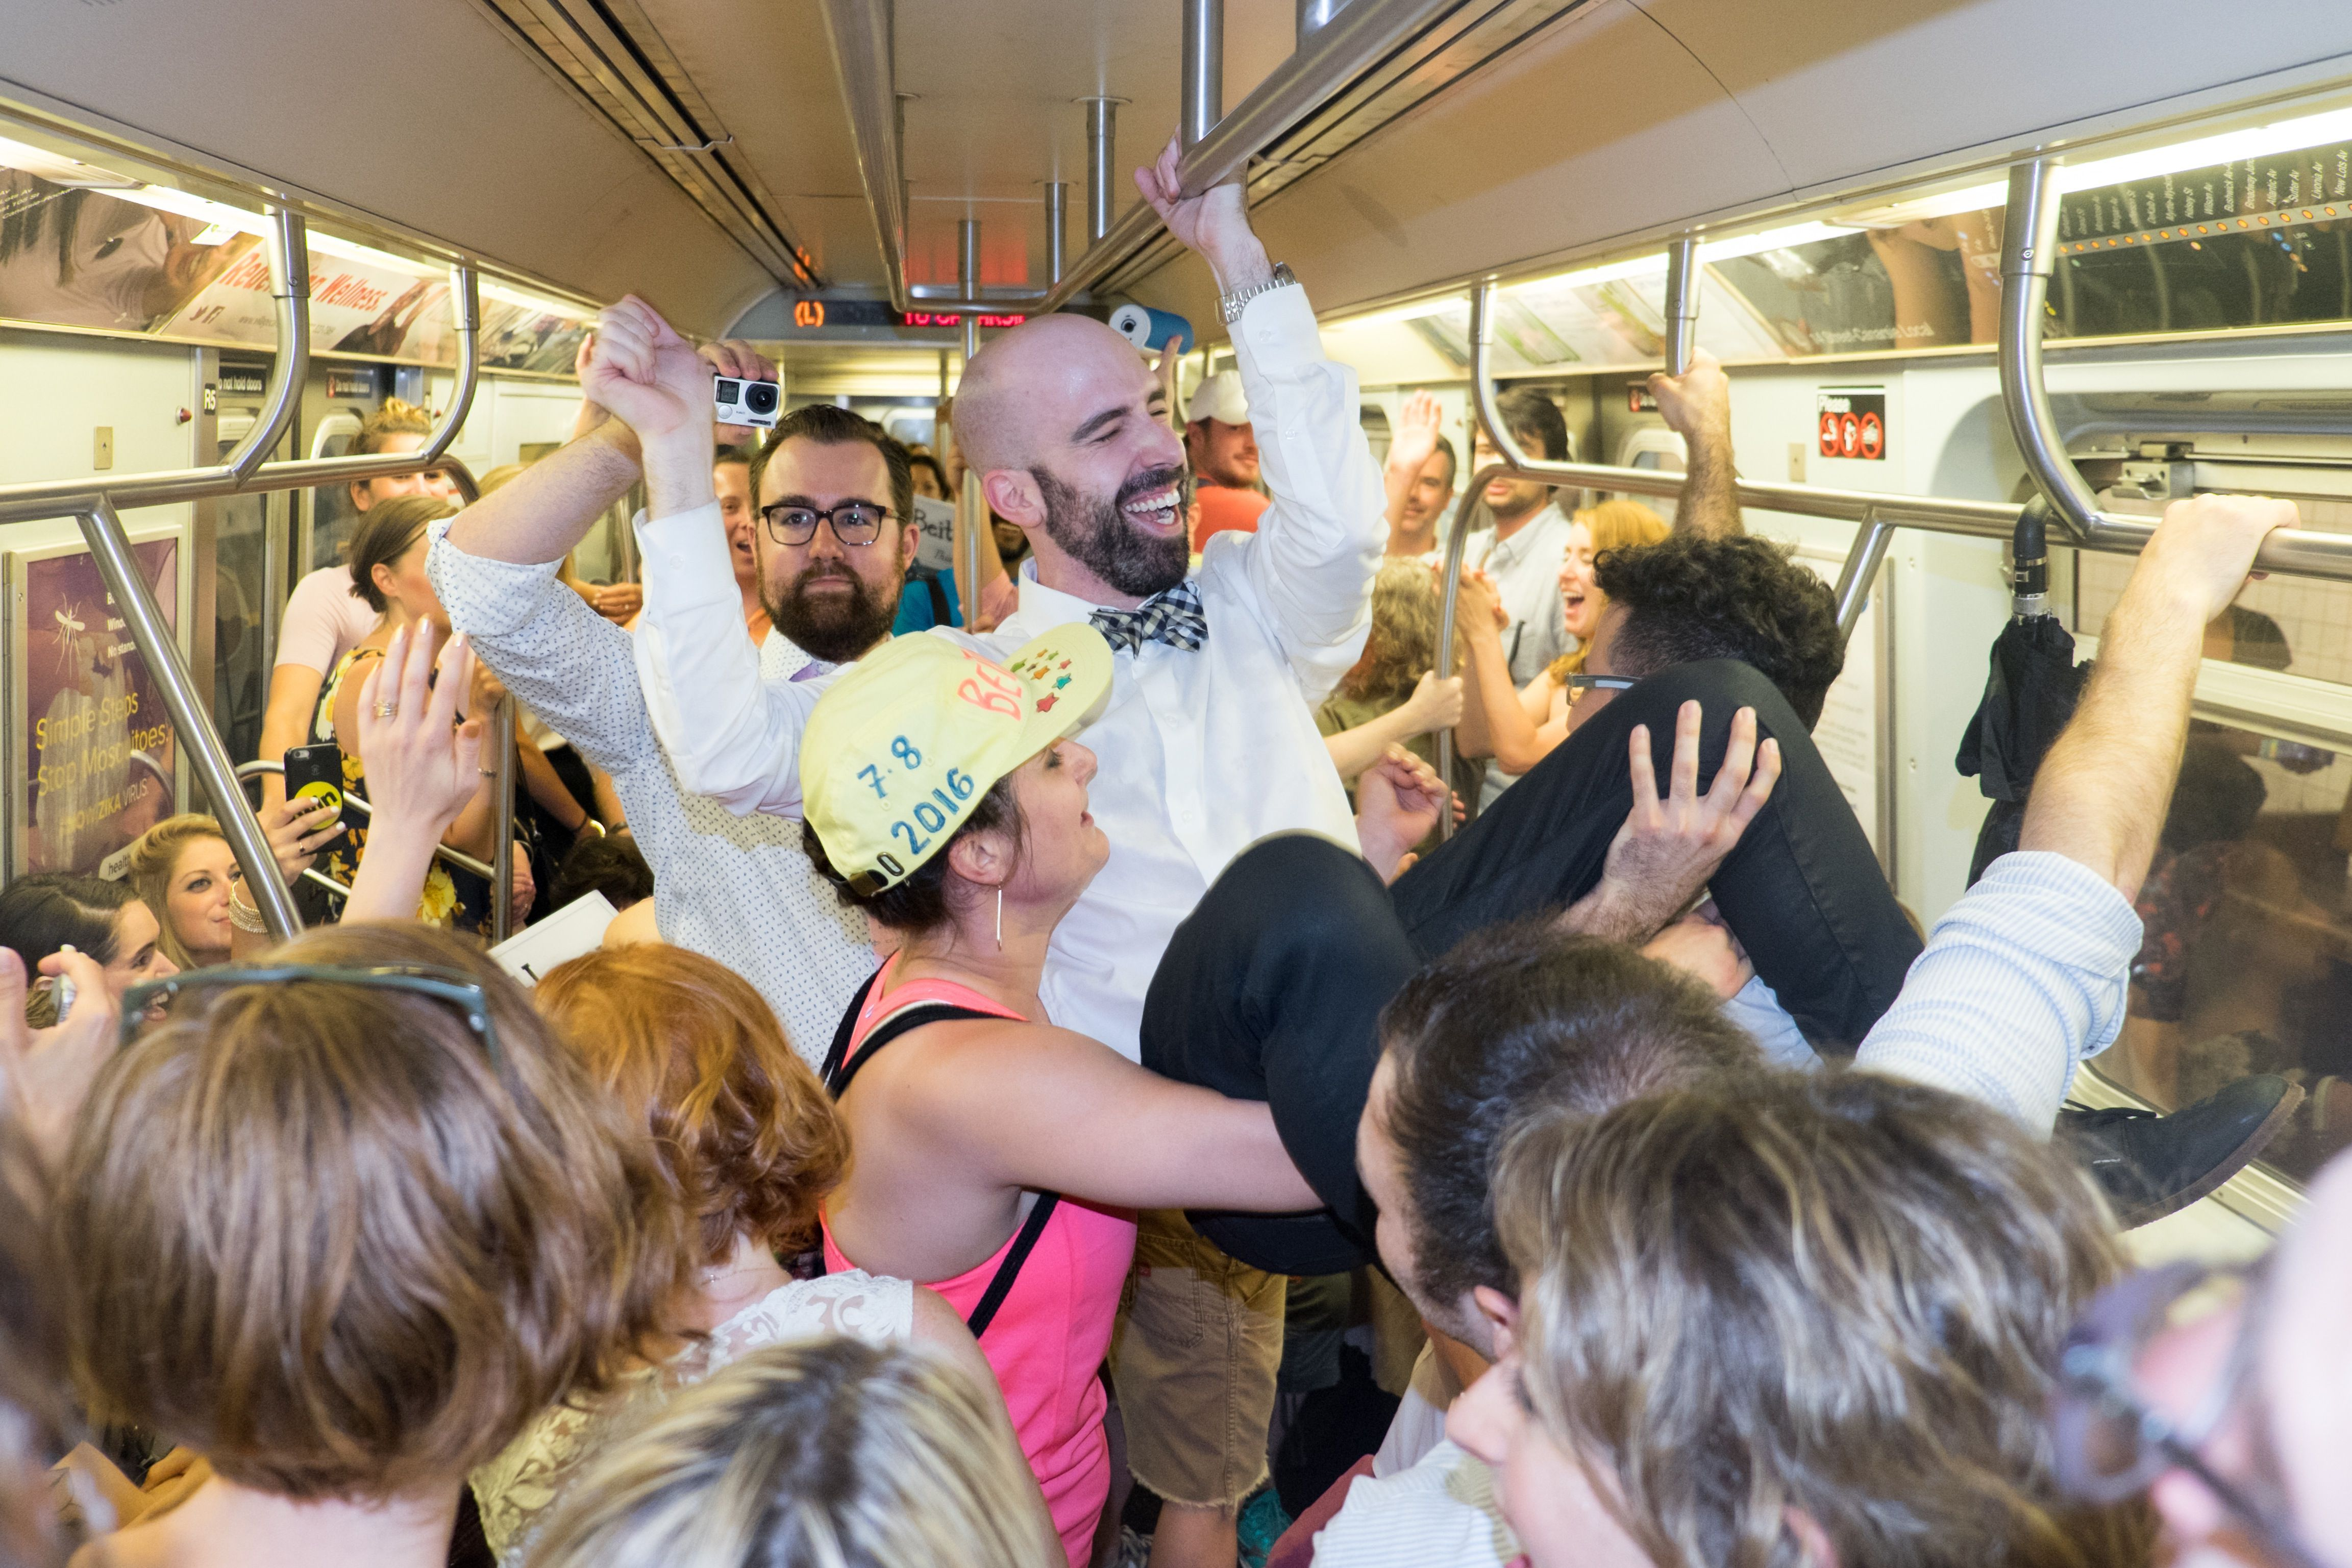 The groom does the hora on the subway.